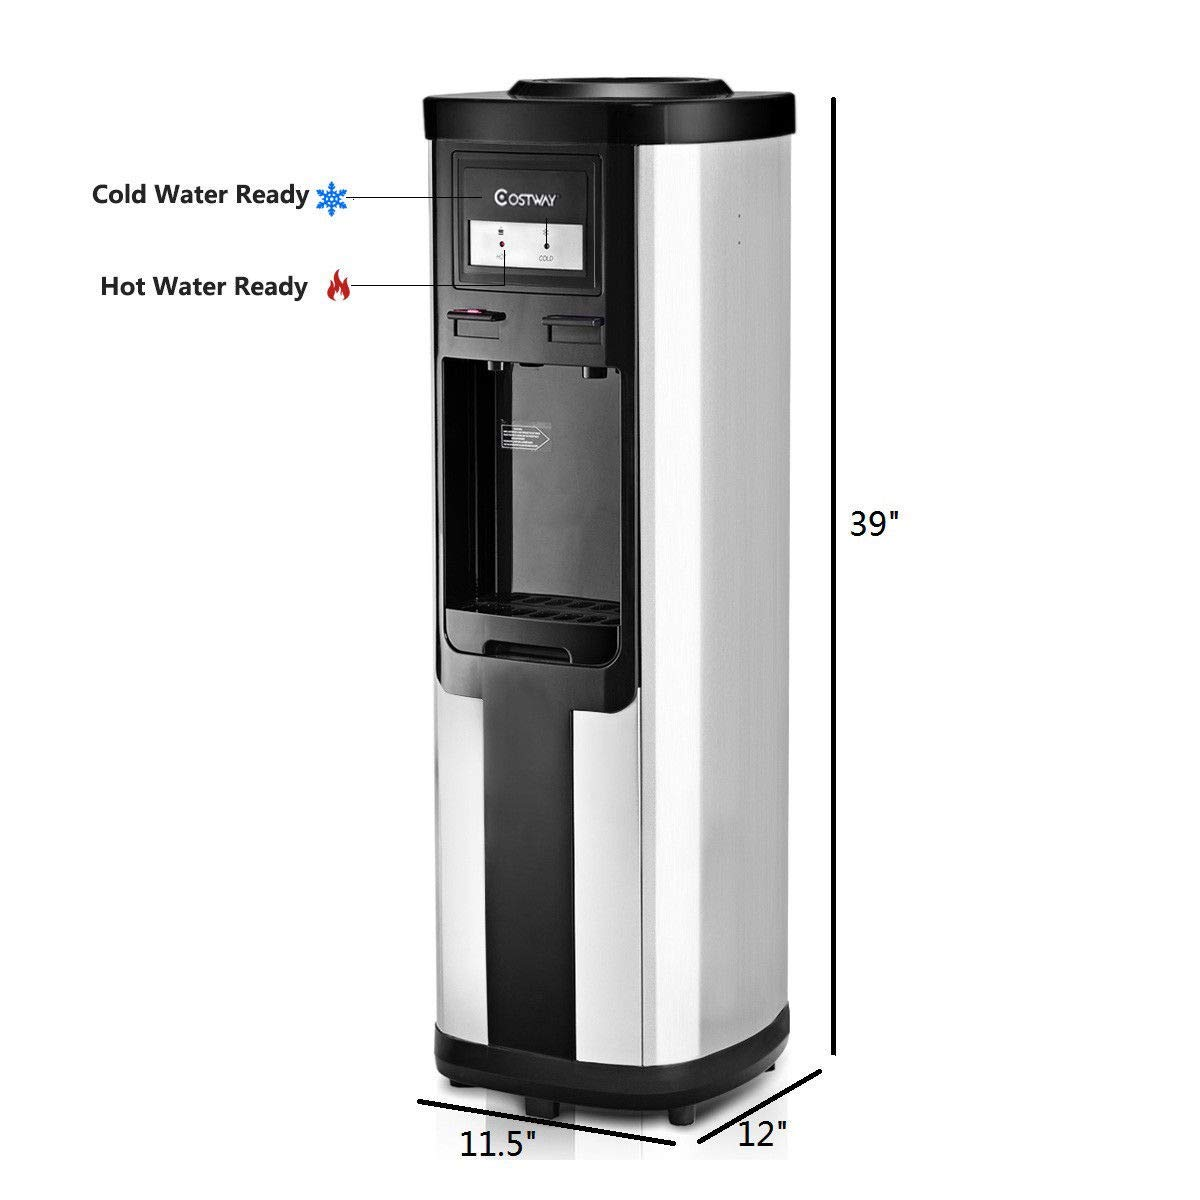 Costway Water Cooler Dispenser 5 Gallon Top Loading Water Dispenser Stainless Steel Freestanding Water Cooler W/Hot and Cold Water (Black and Silver) by COSTWAY (Image #7)